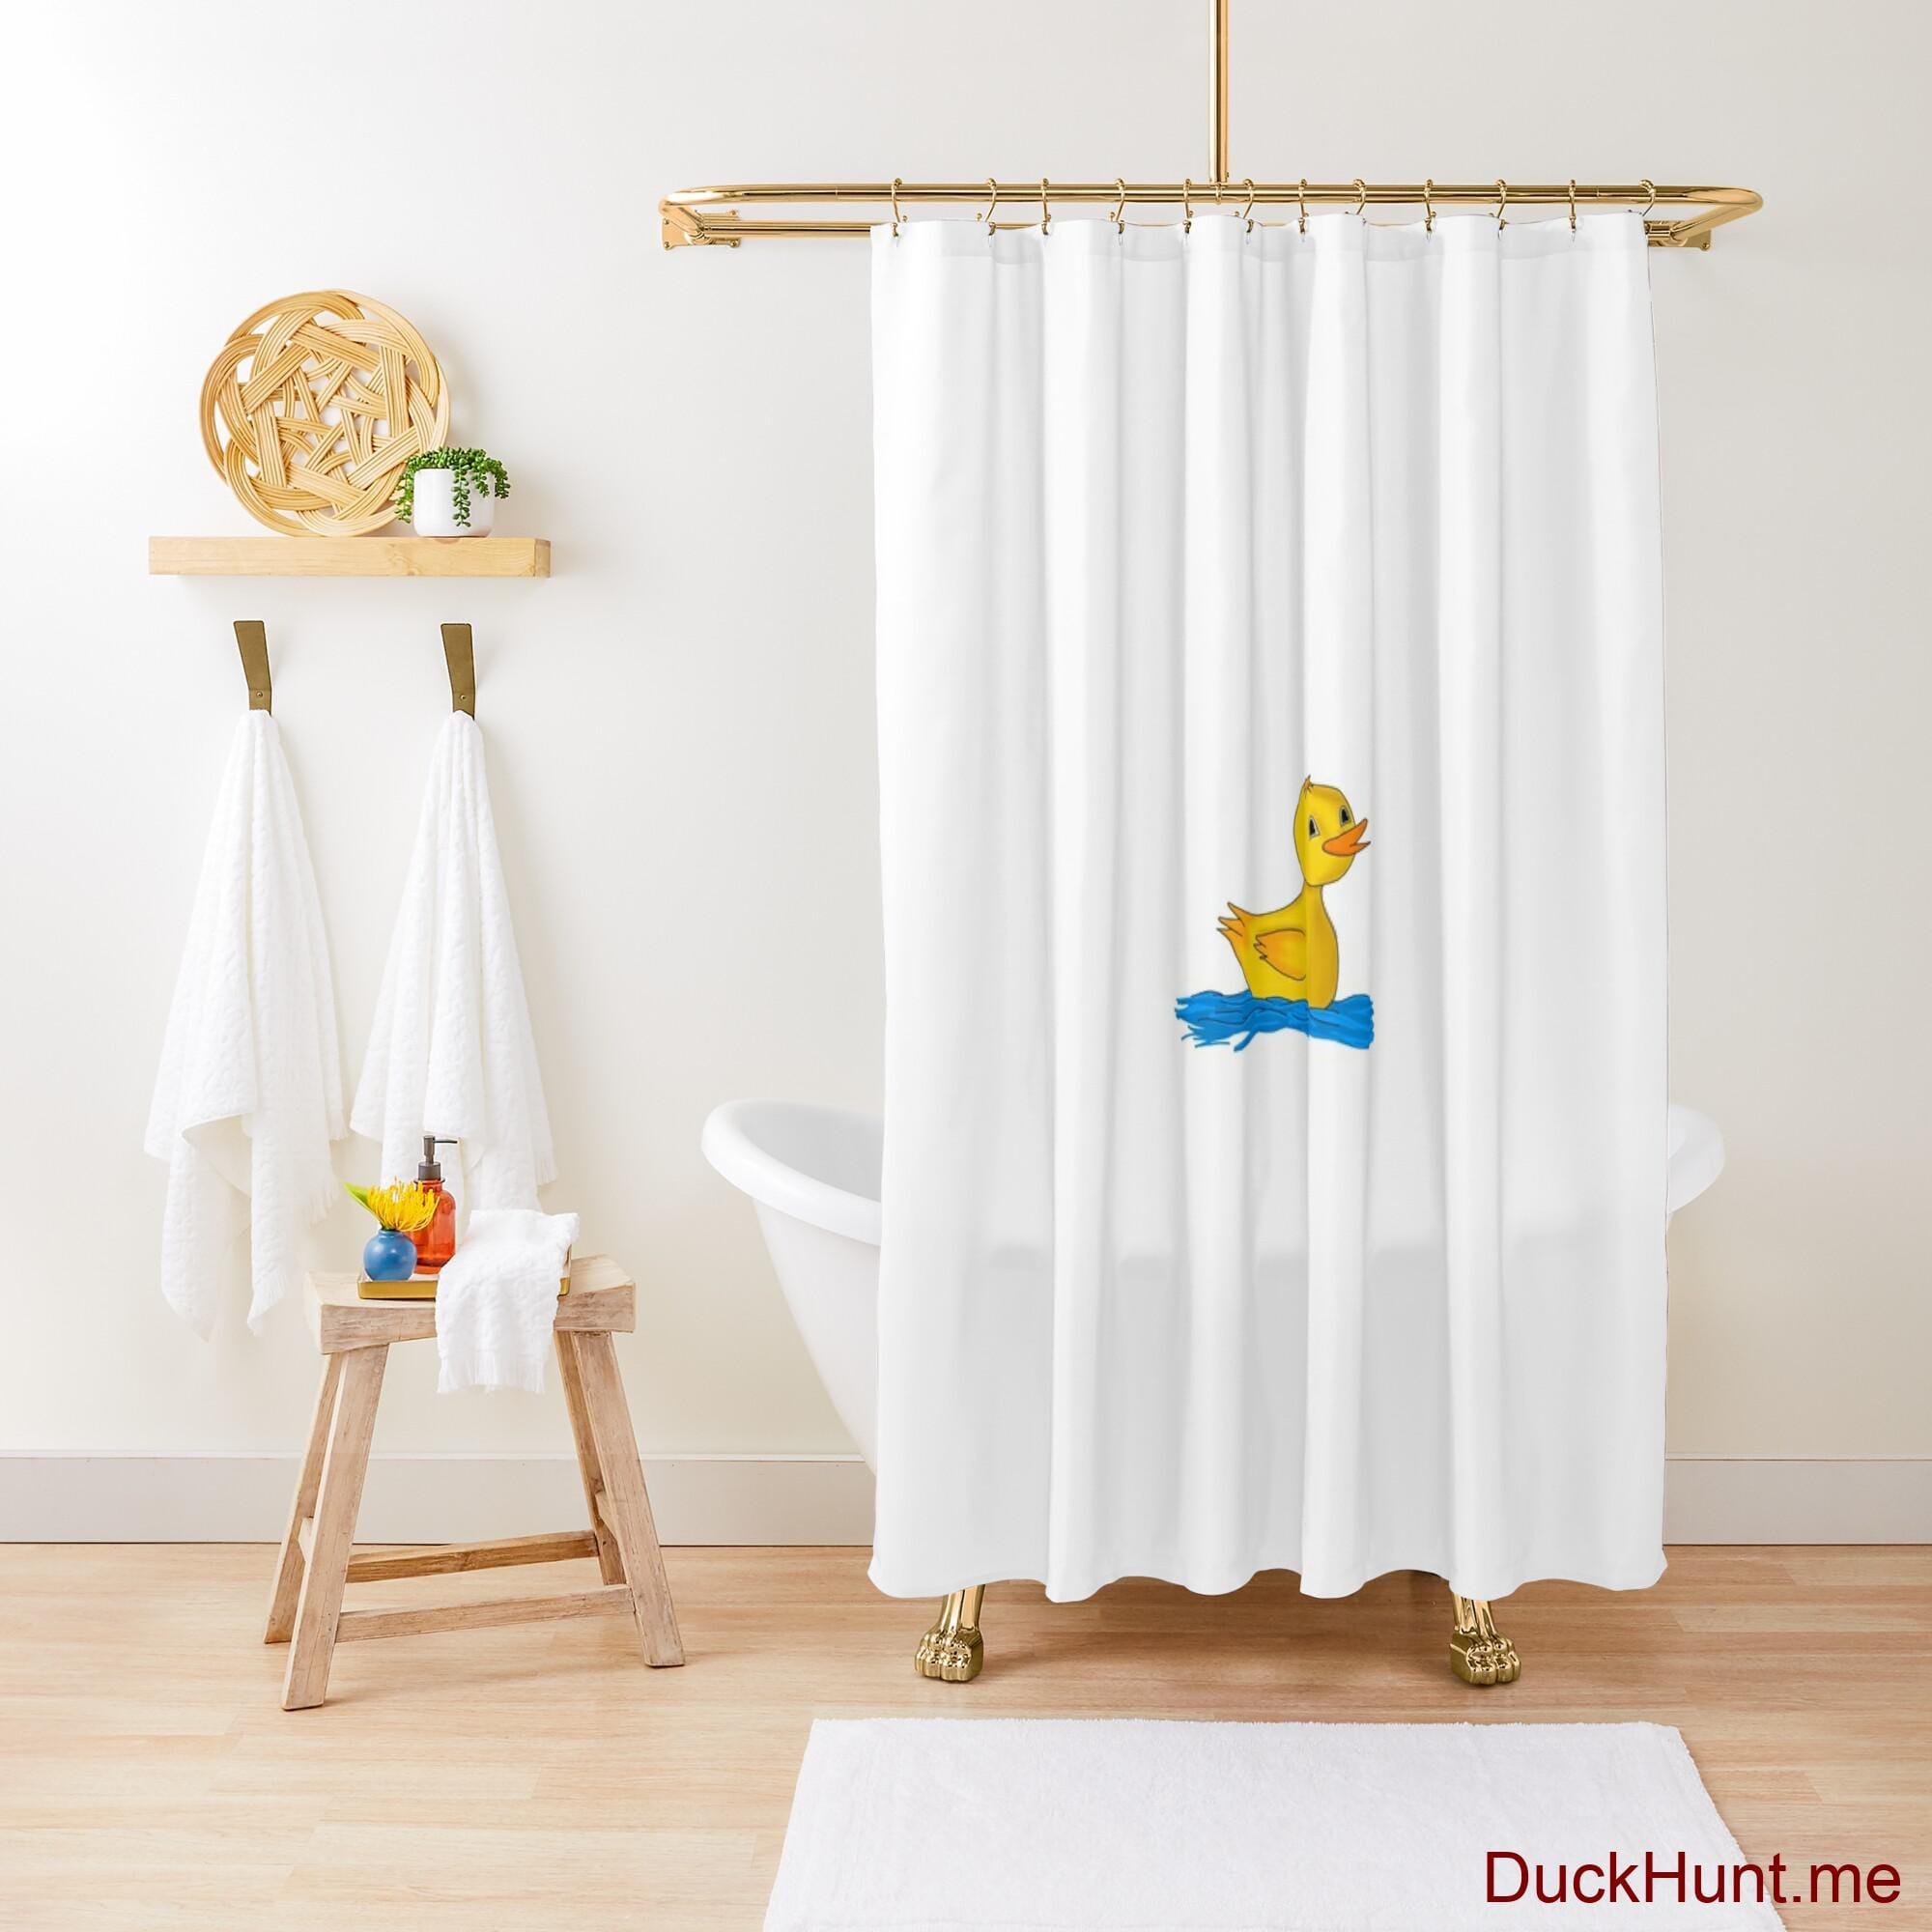 Plastic Duck Shower Curtain